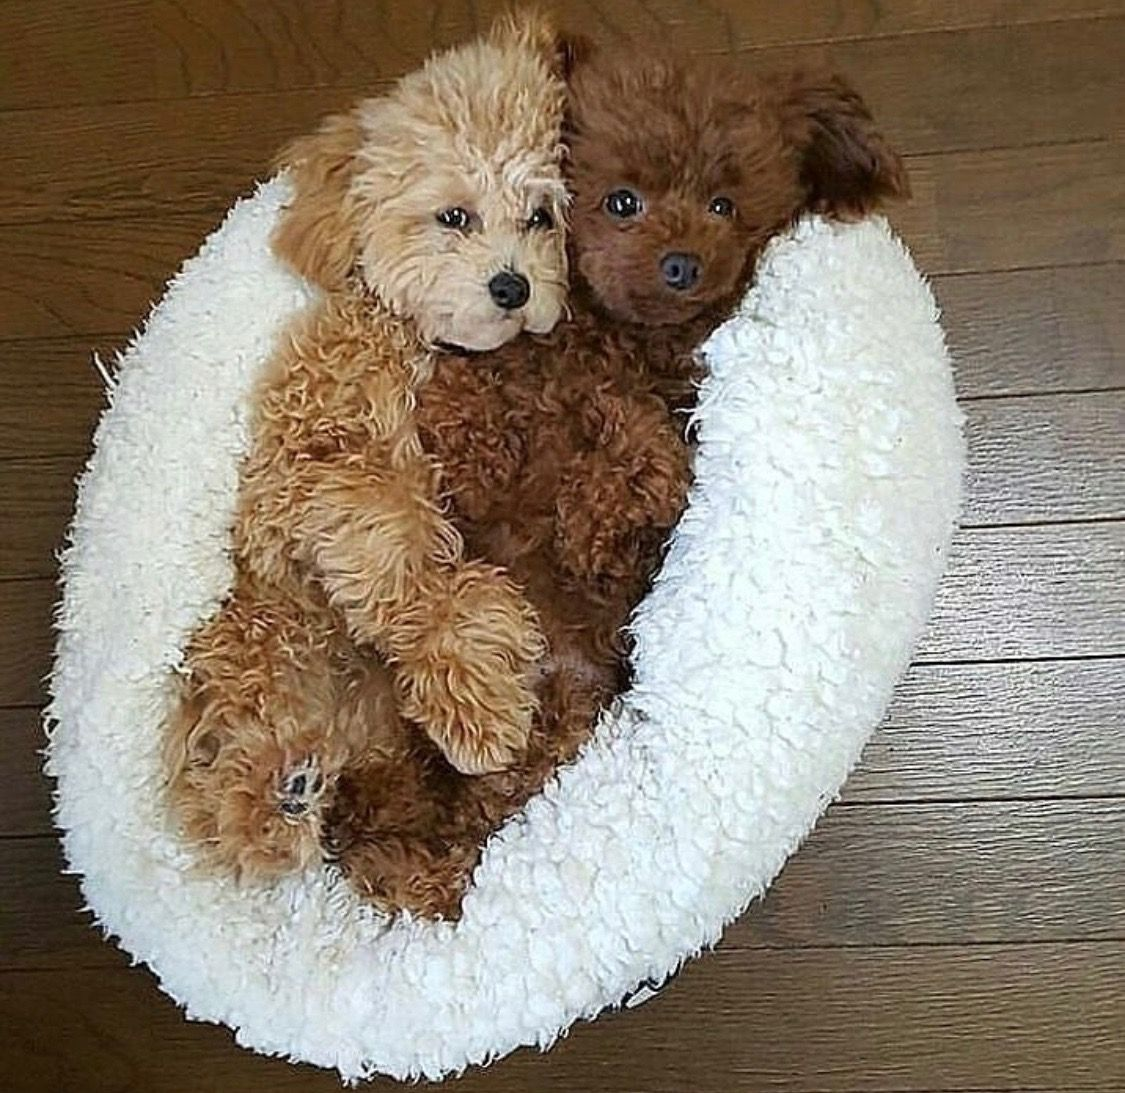 Precious pair of puppies. One dark, one light. Like my puppy Rolo and my boyfriend Adam's who is his brother #toysfordogs